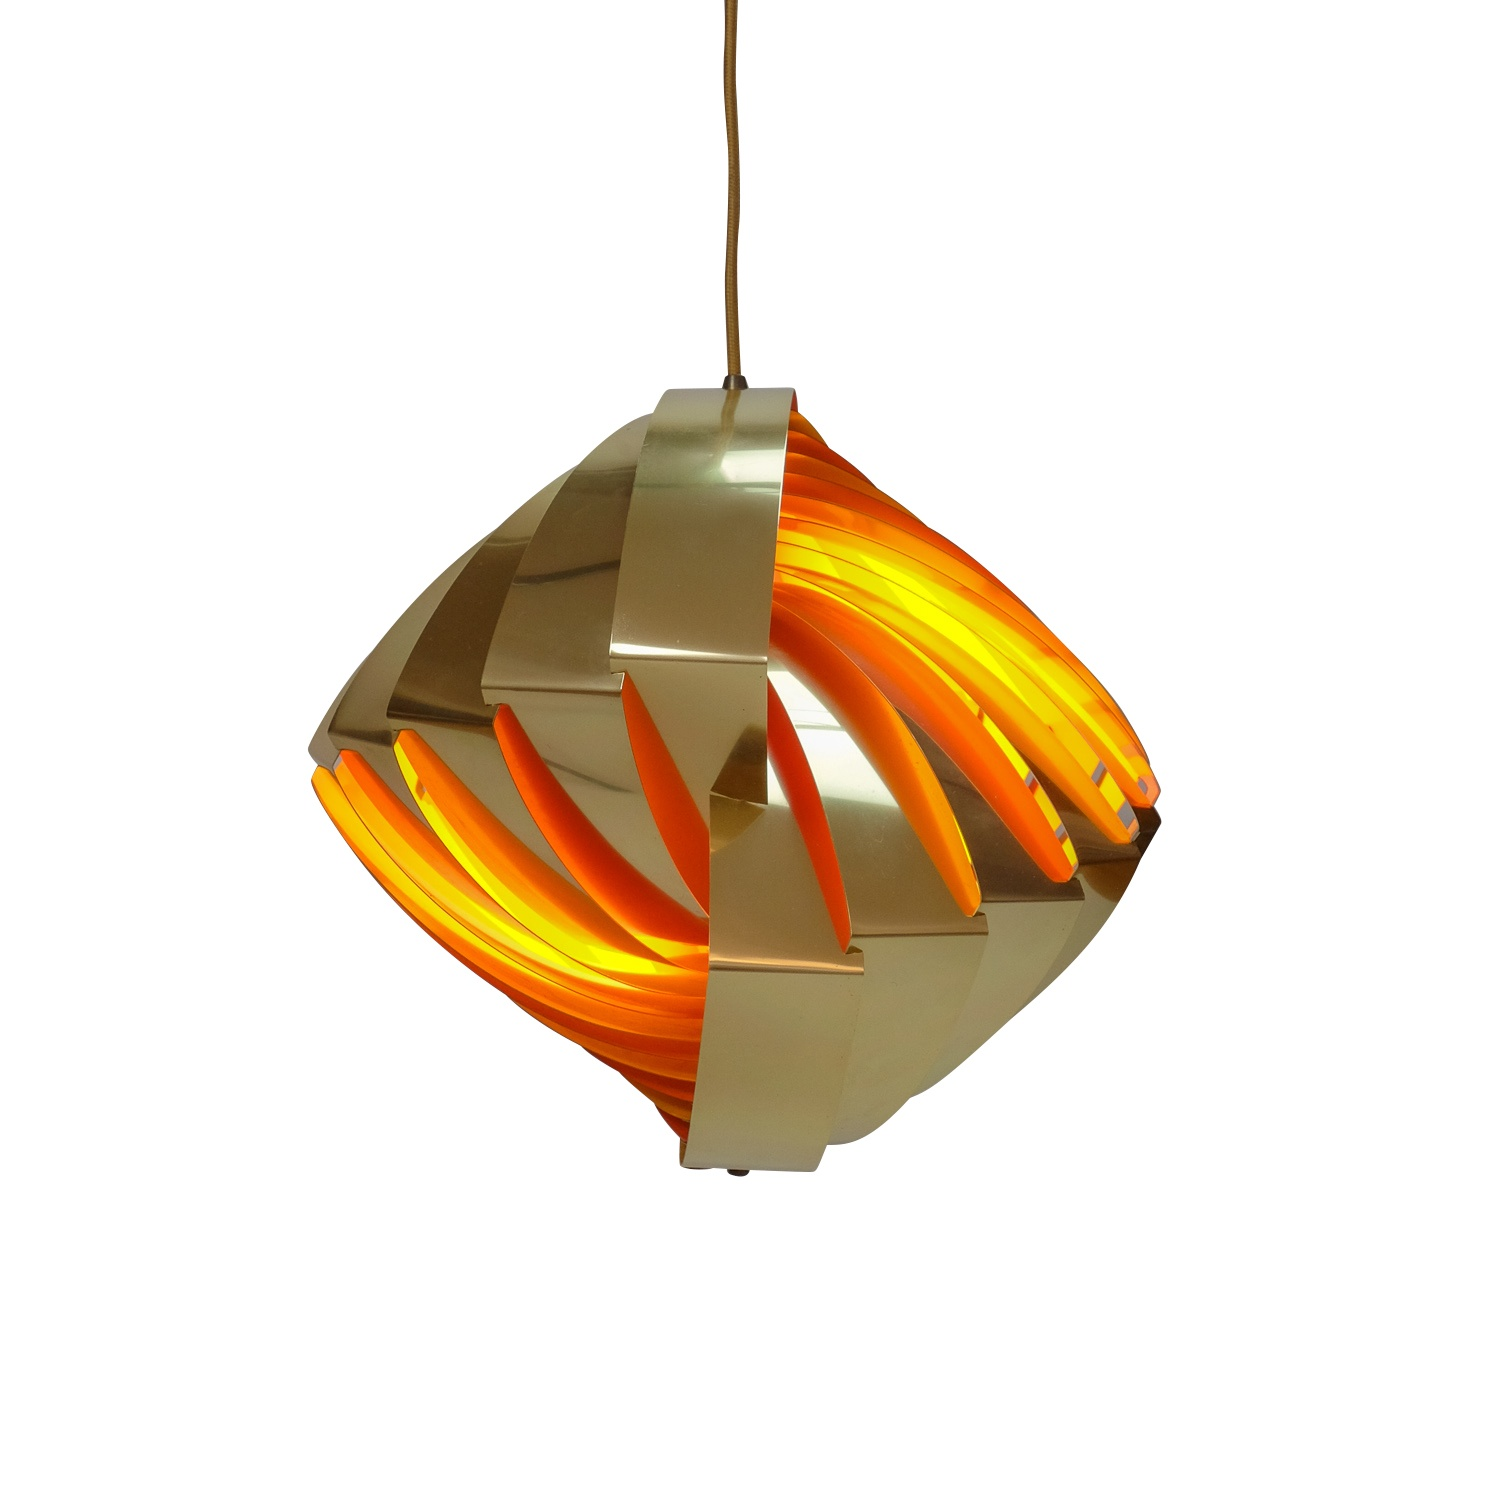 Gold & Orange Konkylie Pendant Lamp by Louis Weisdorf for Lyfa, 1960s